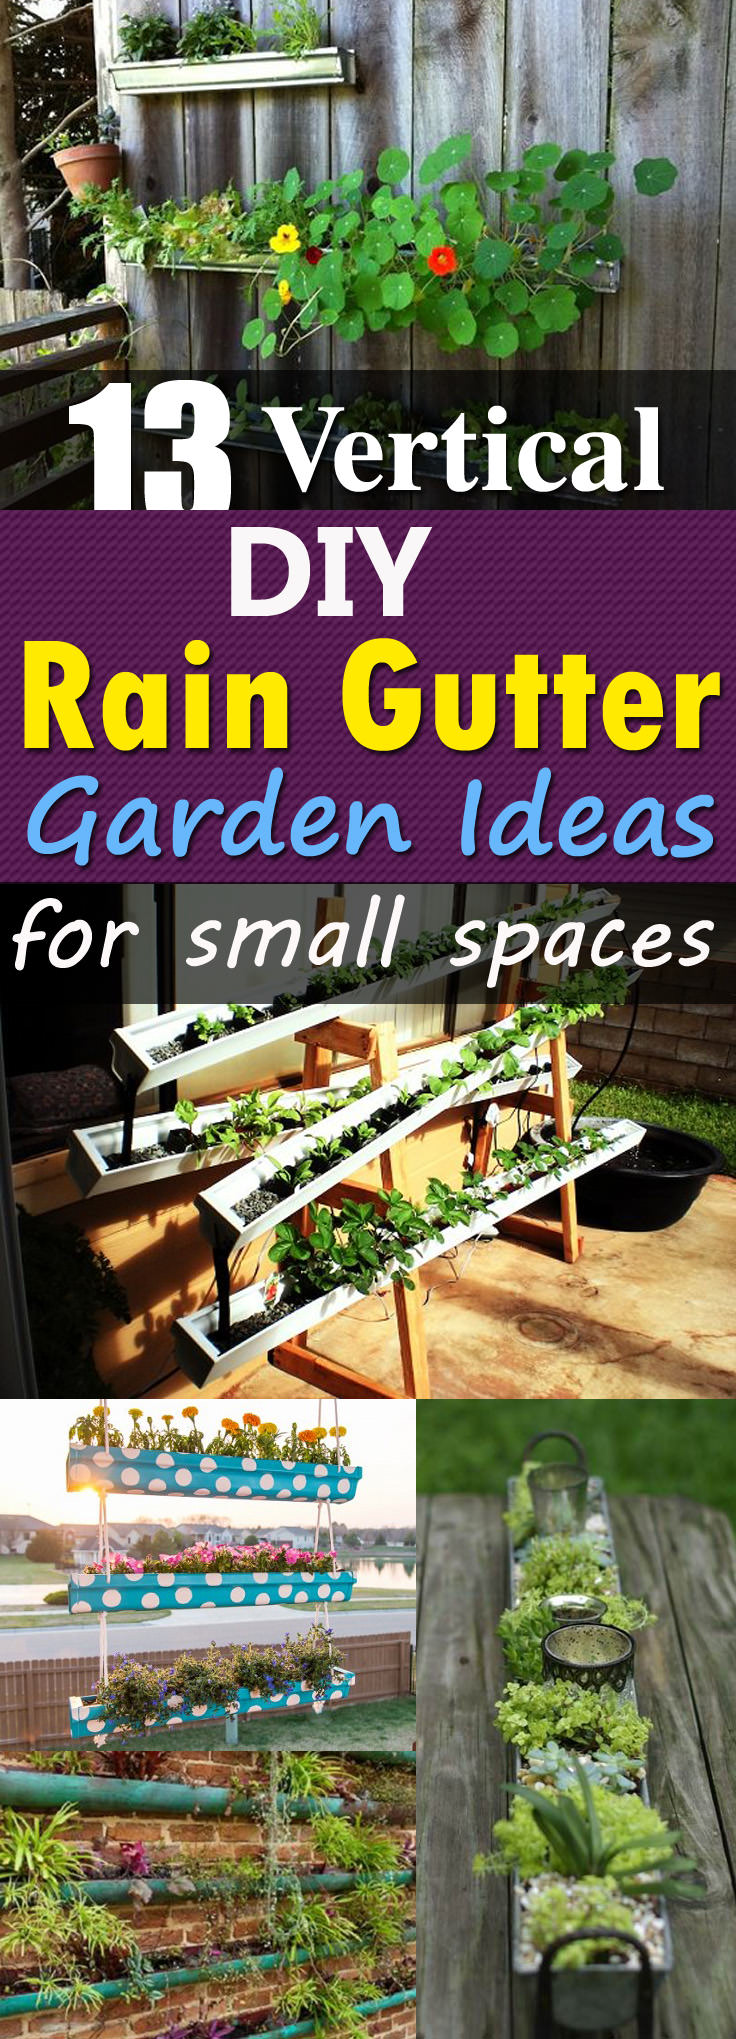 13 DIY Gutter Garden Ideas to grow plants vertically. Perfect for small spaces, you can also use them to create privacy or for decoration!